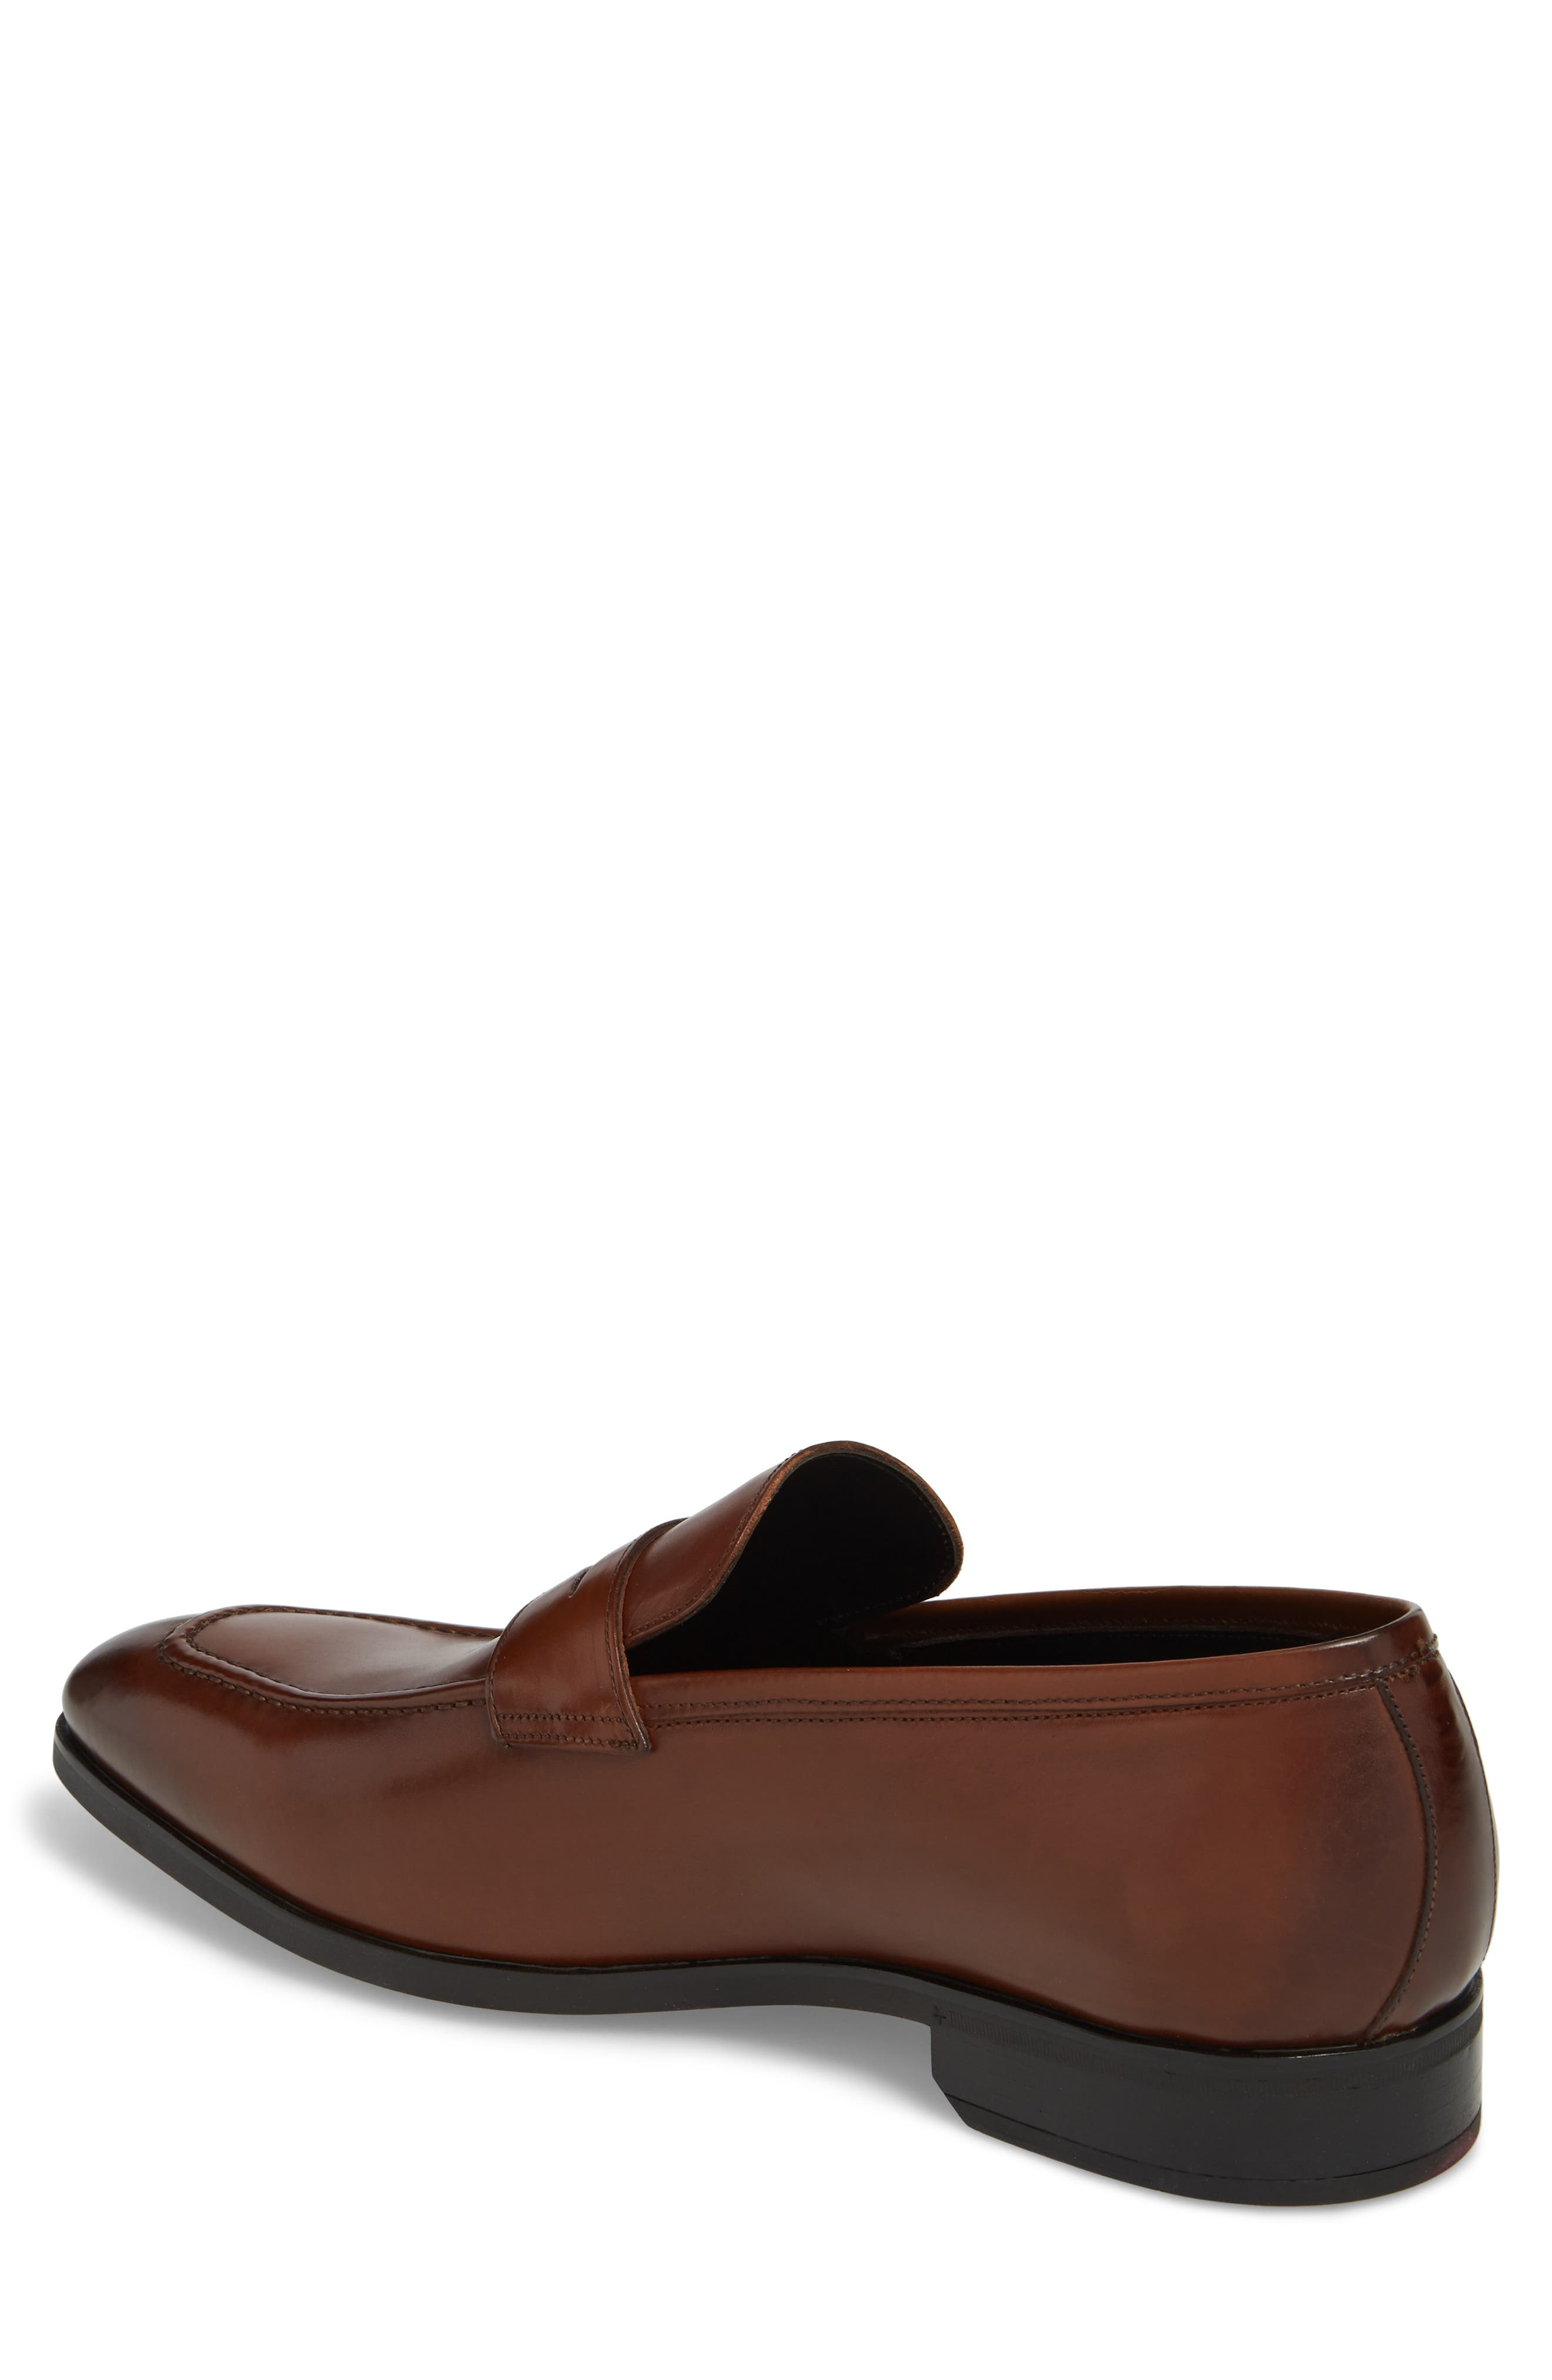 TO BOOT NEW YORK,                             Raleigh Apron Toe Penny Loafer,                             Alternate thumbnail 2, color,                             237